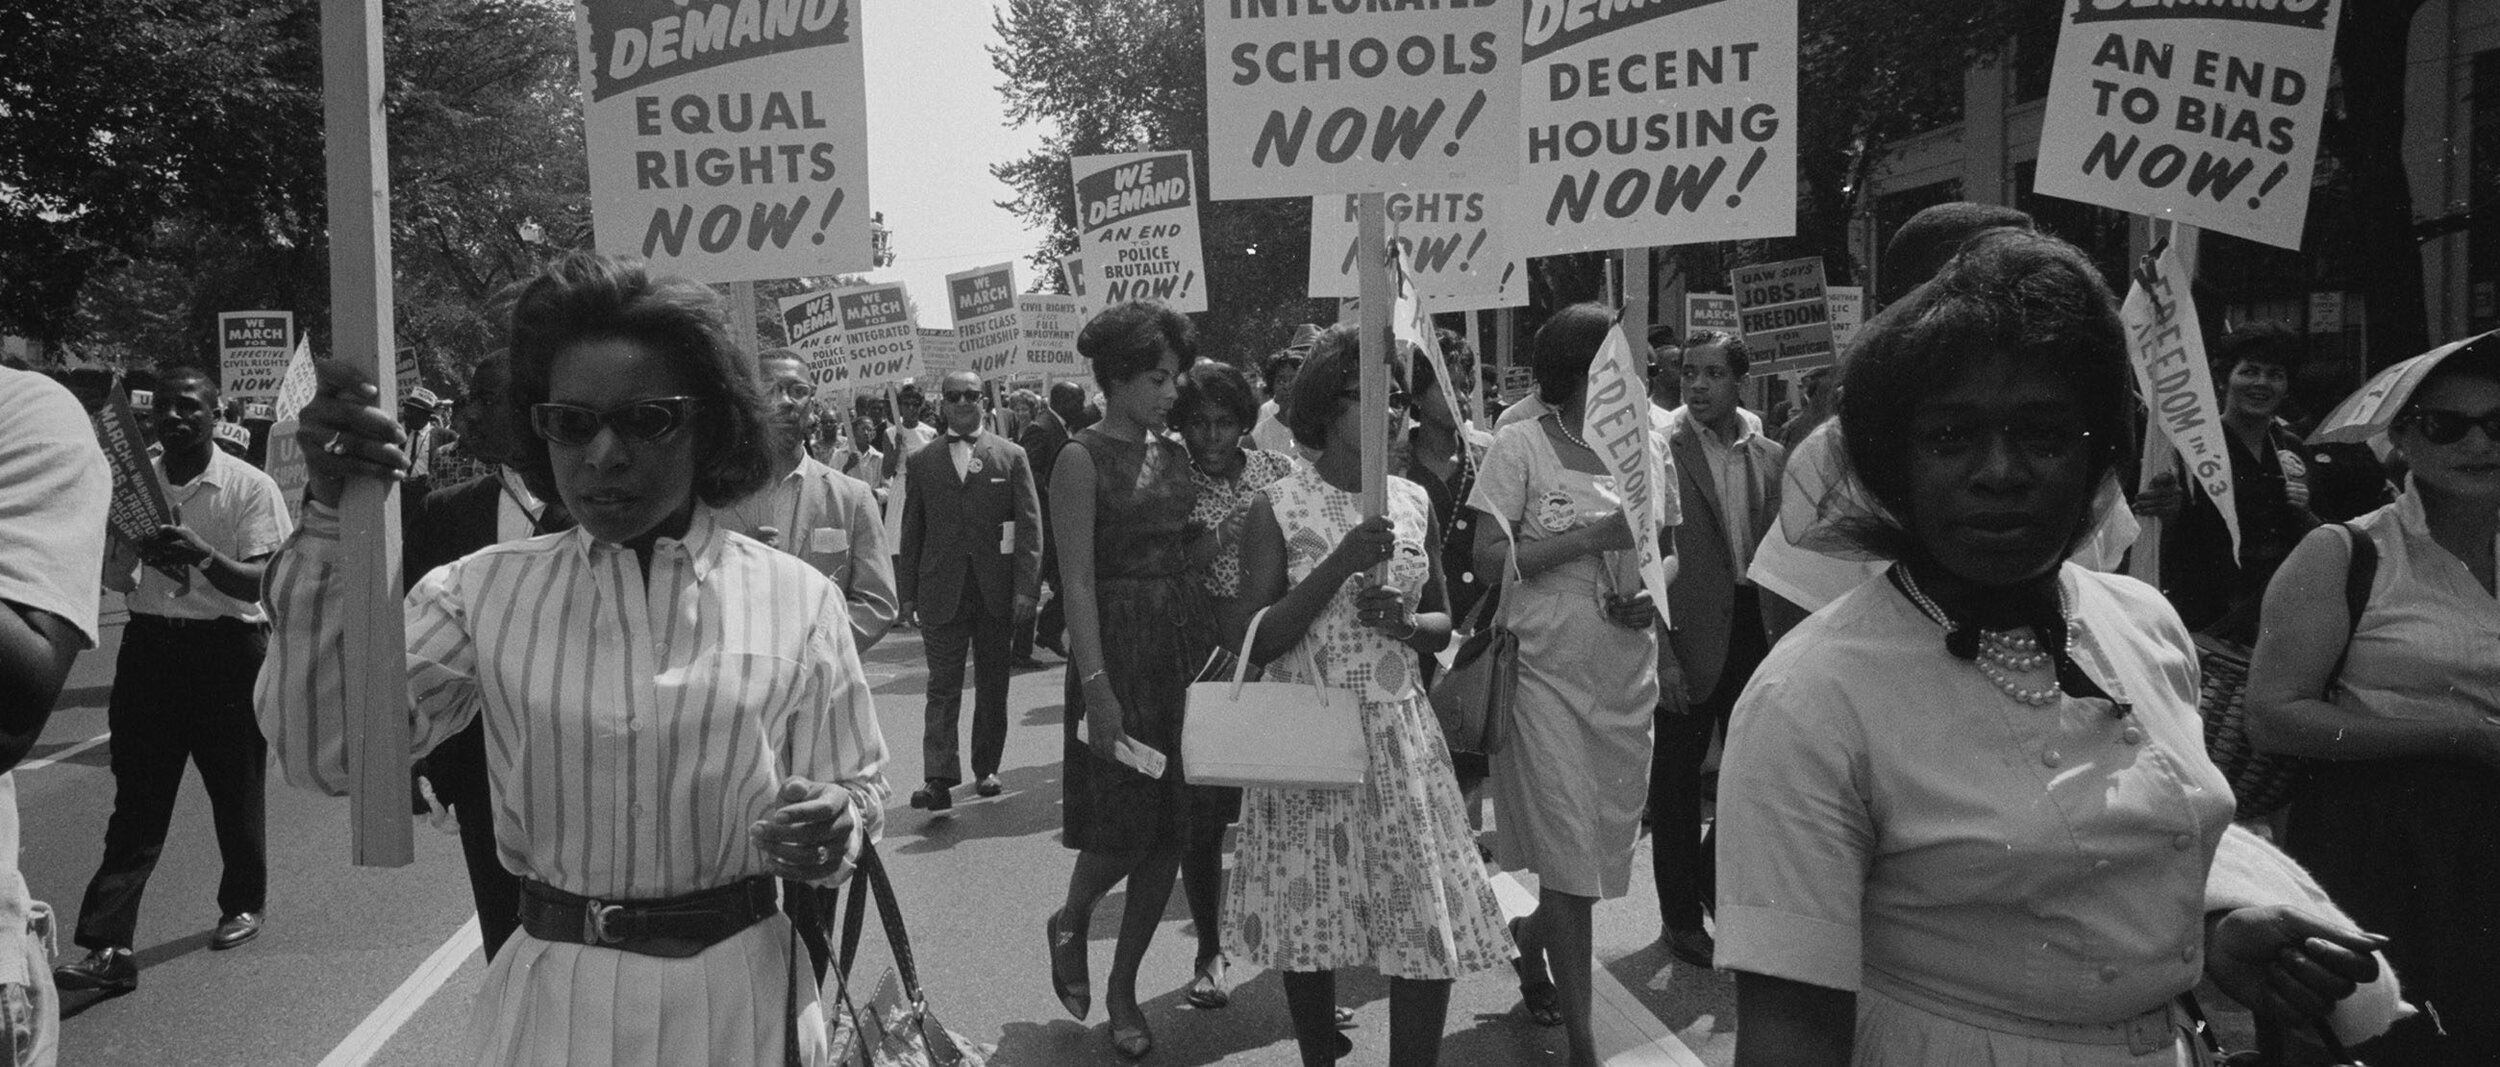 civilrights_featured-1-2600x1110.jpg